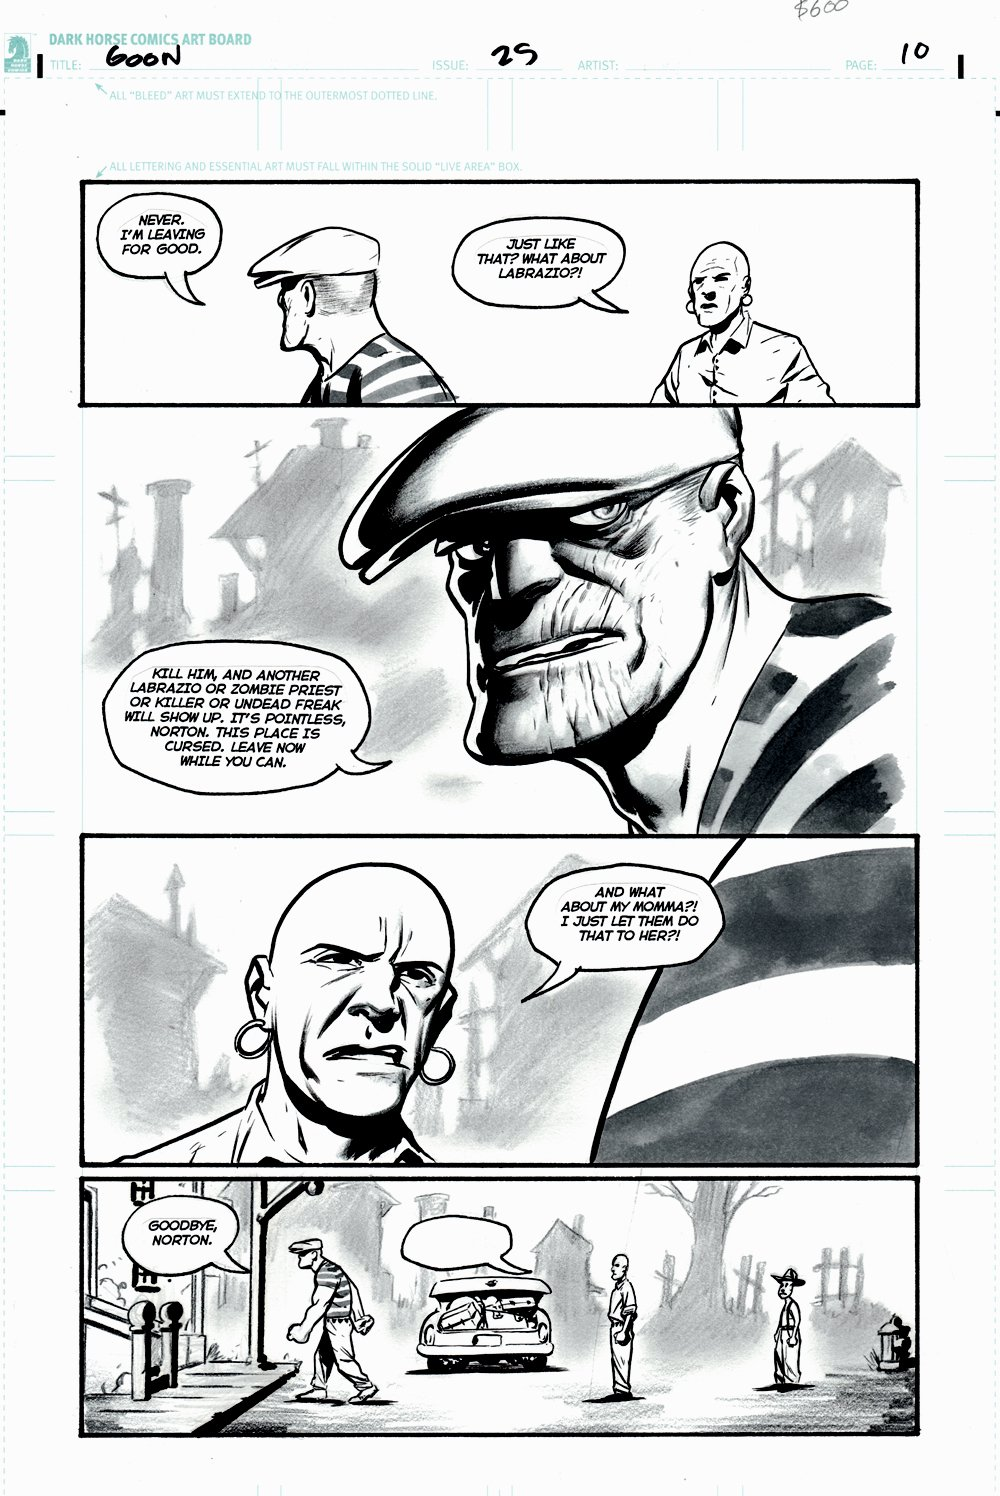 The Goon #25 p 10 (GOON IN EVERY PANEL! FRANKIE & NORTON ALSO!) 2008